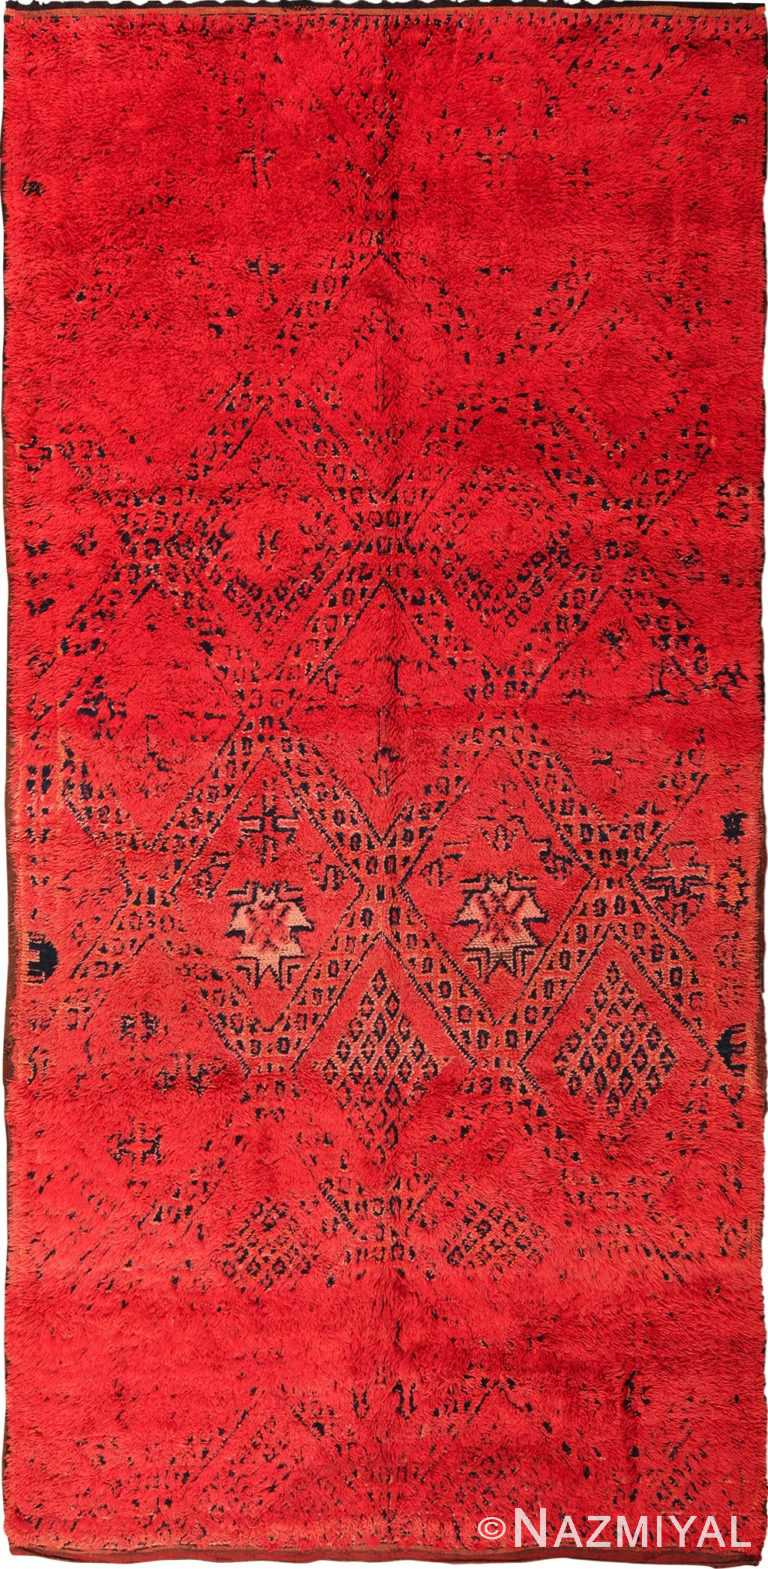 Vintage Gallery Size Double Sided Red Berber Moroccan Rug 49880 - Nazmiyal